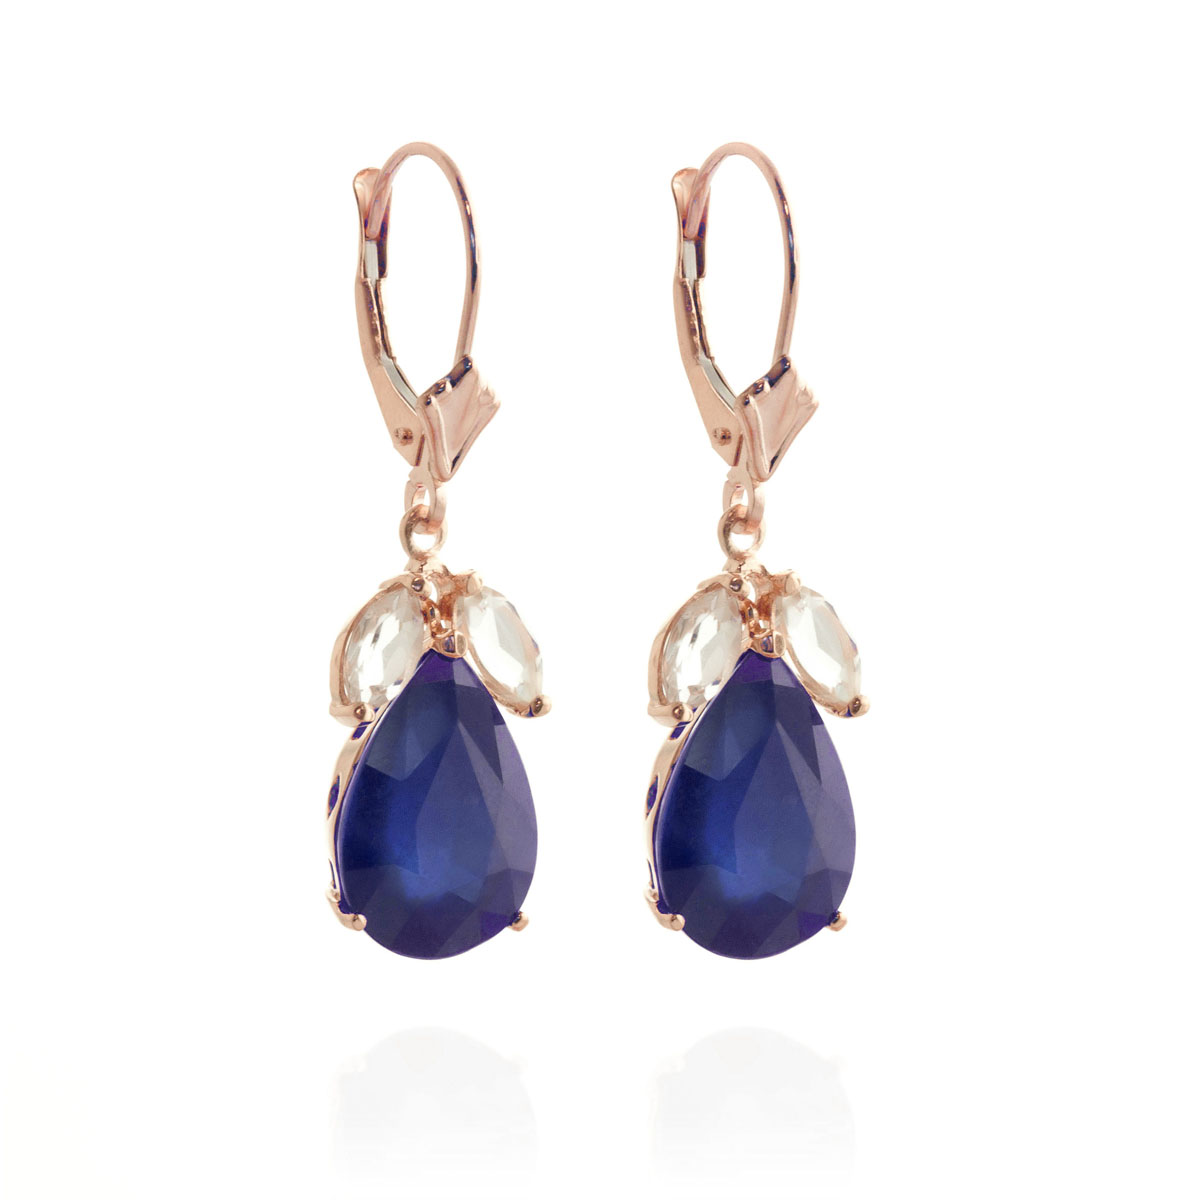 Sapphire & White Topaz Drop Earrings in 9ct Rose Gold